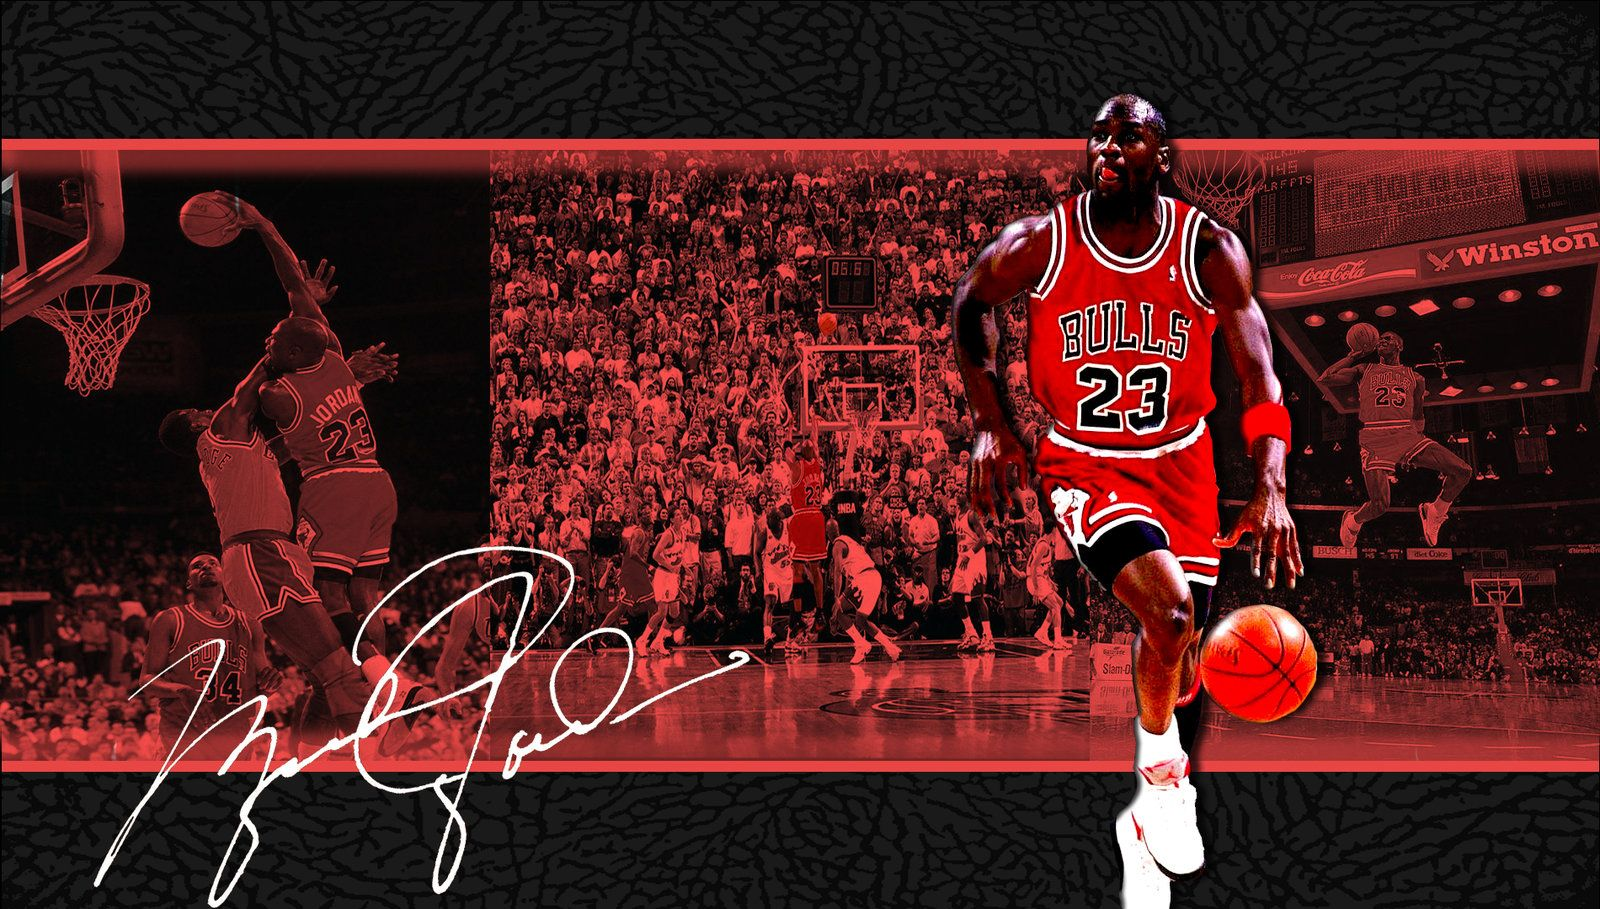 Michael Jordan Cool wallpaper with signature Michael